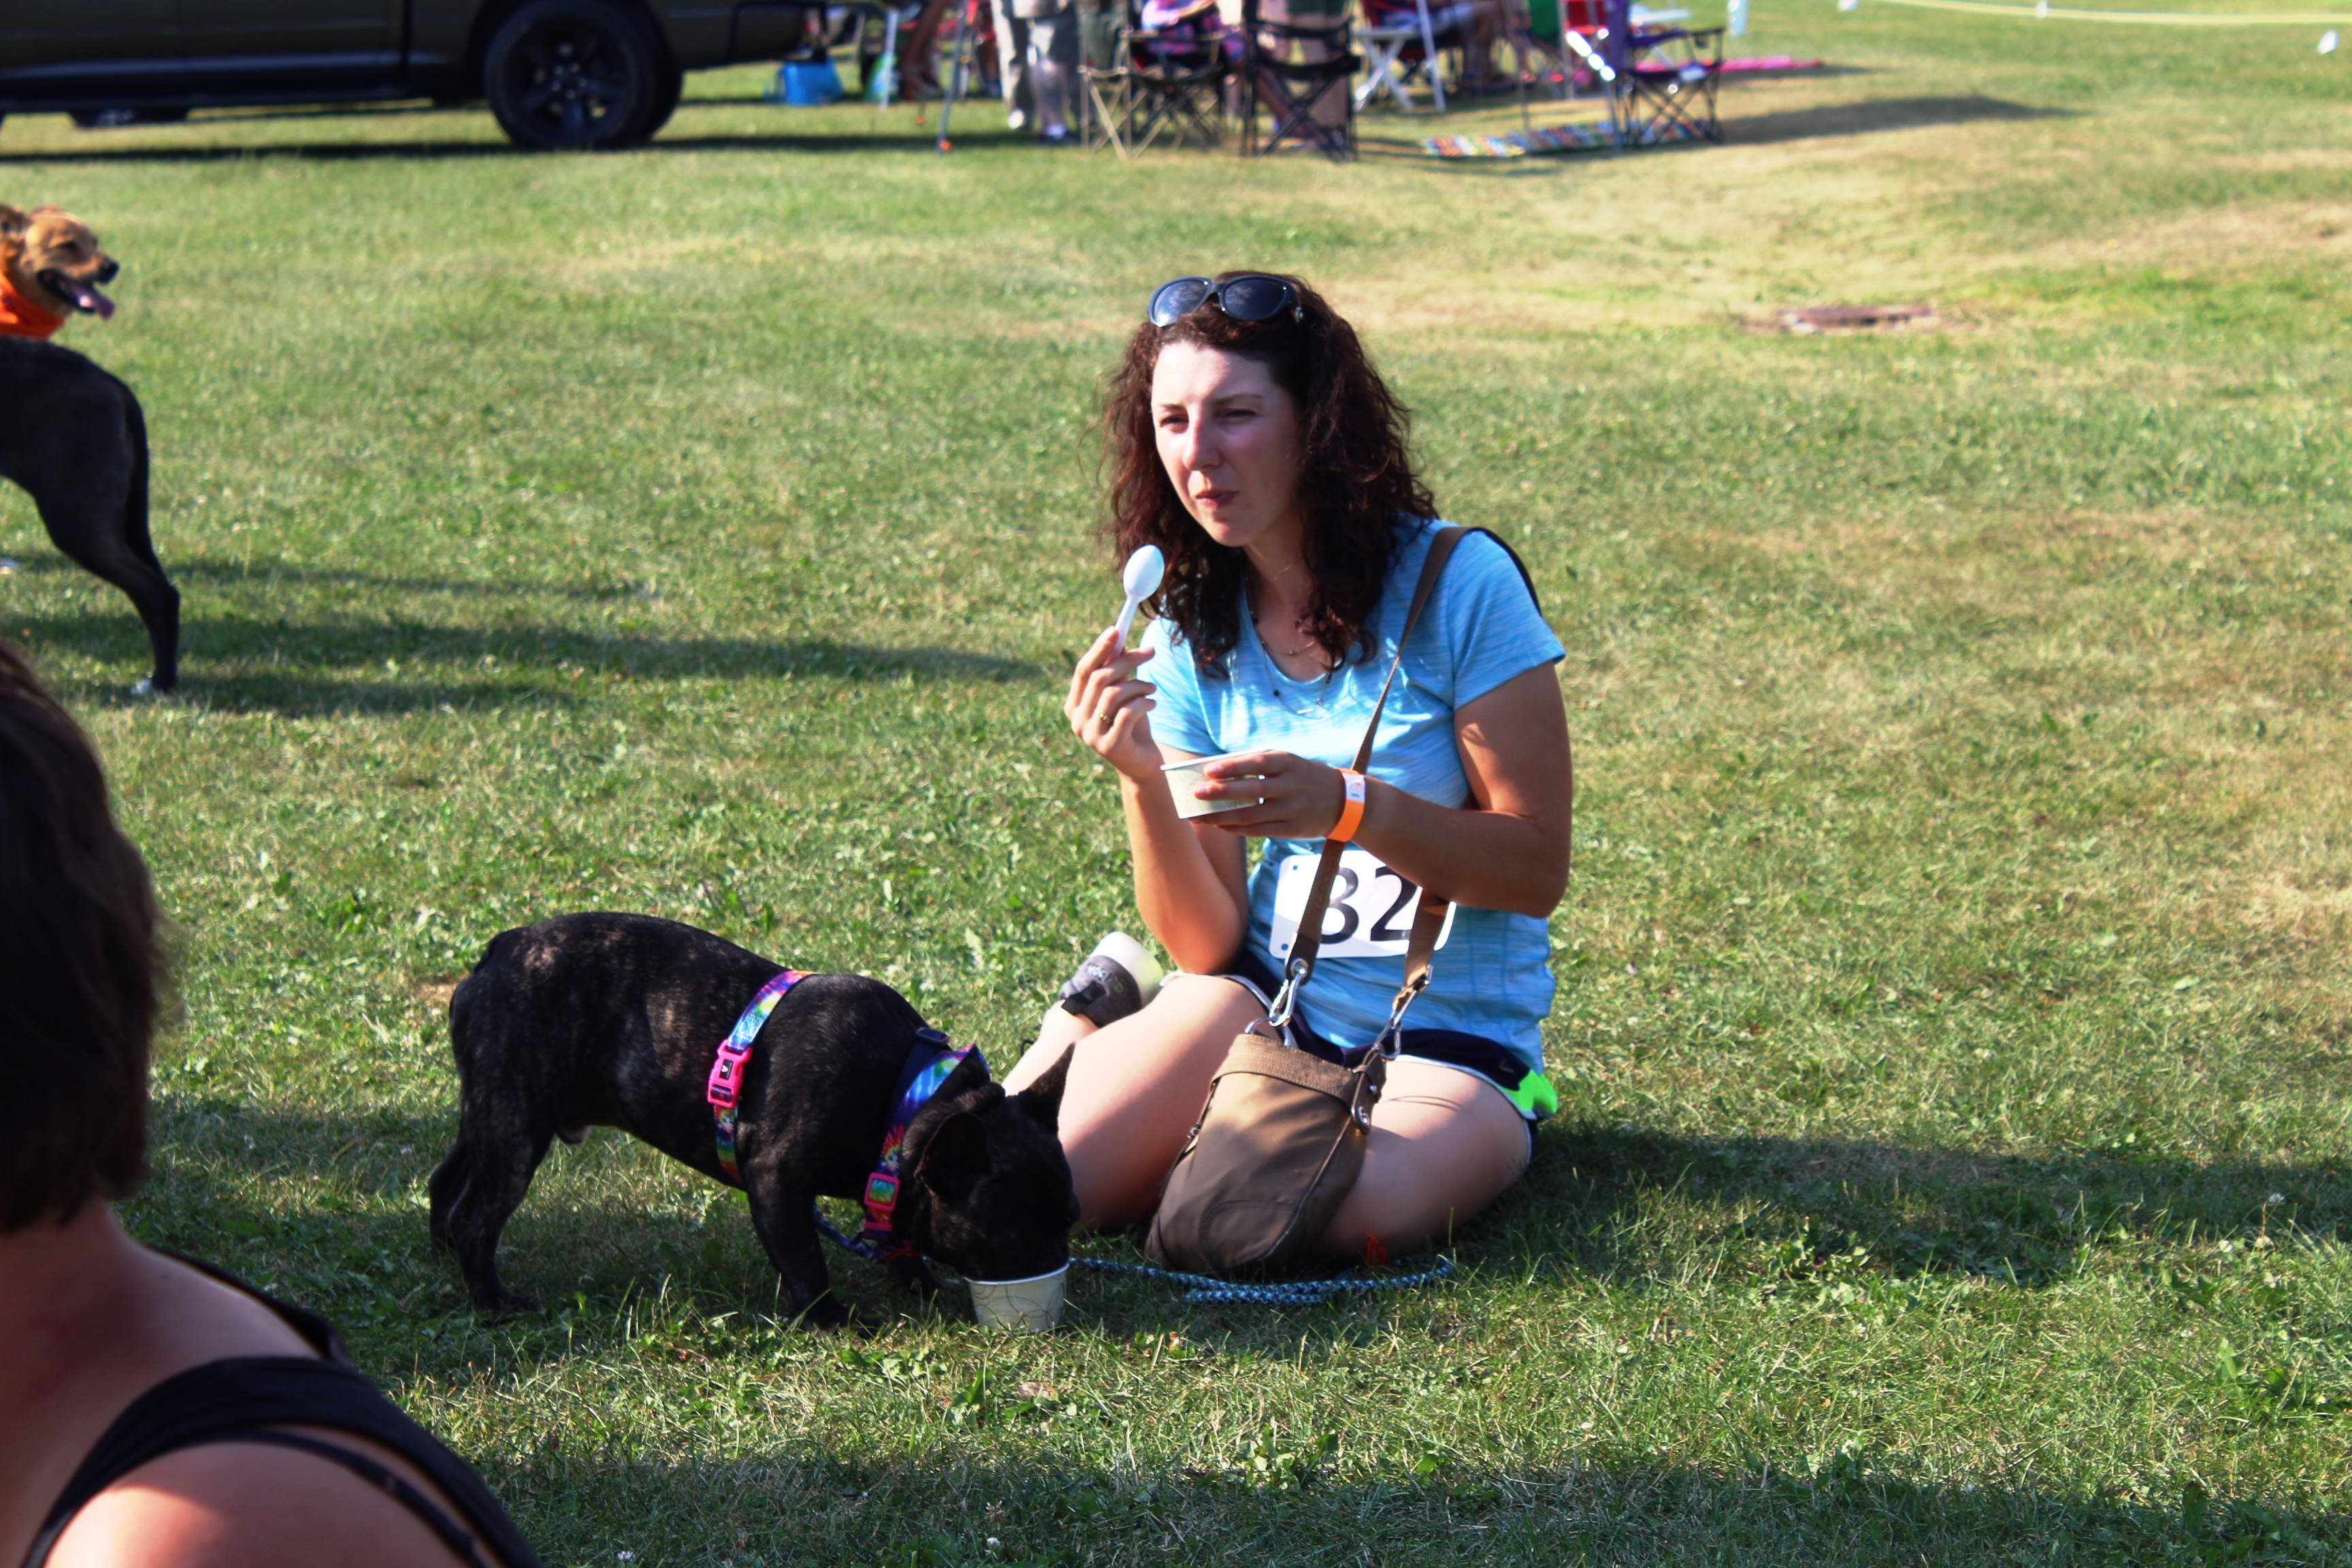 Woman and dog both eating Dairy Haus ice cream at the Saratoga Dog & Pony Show to benefit AIM Services, Inc.